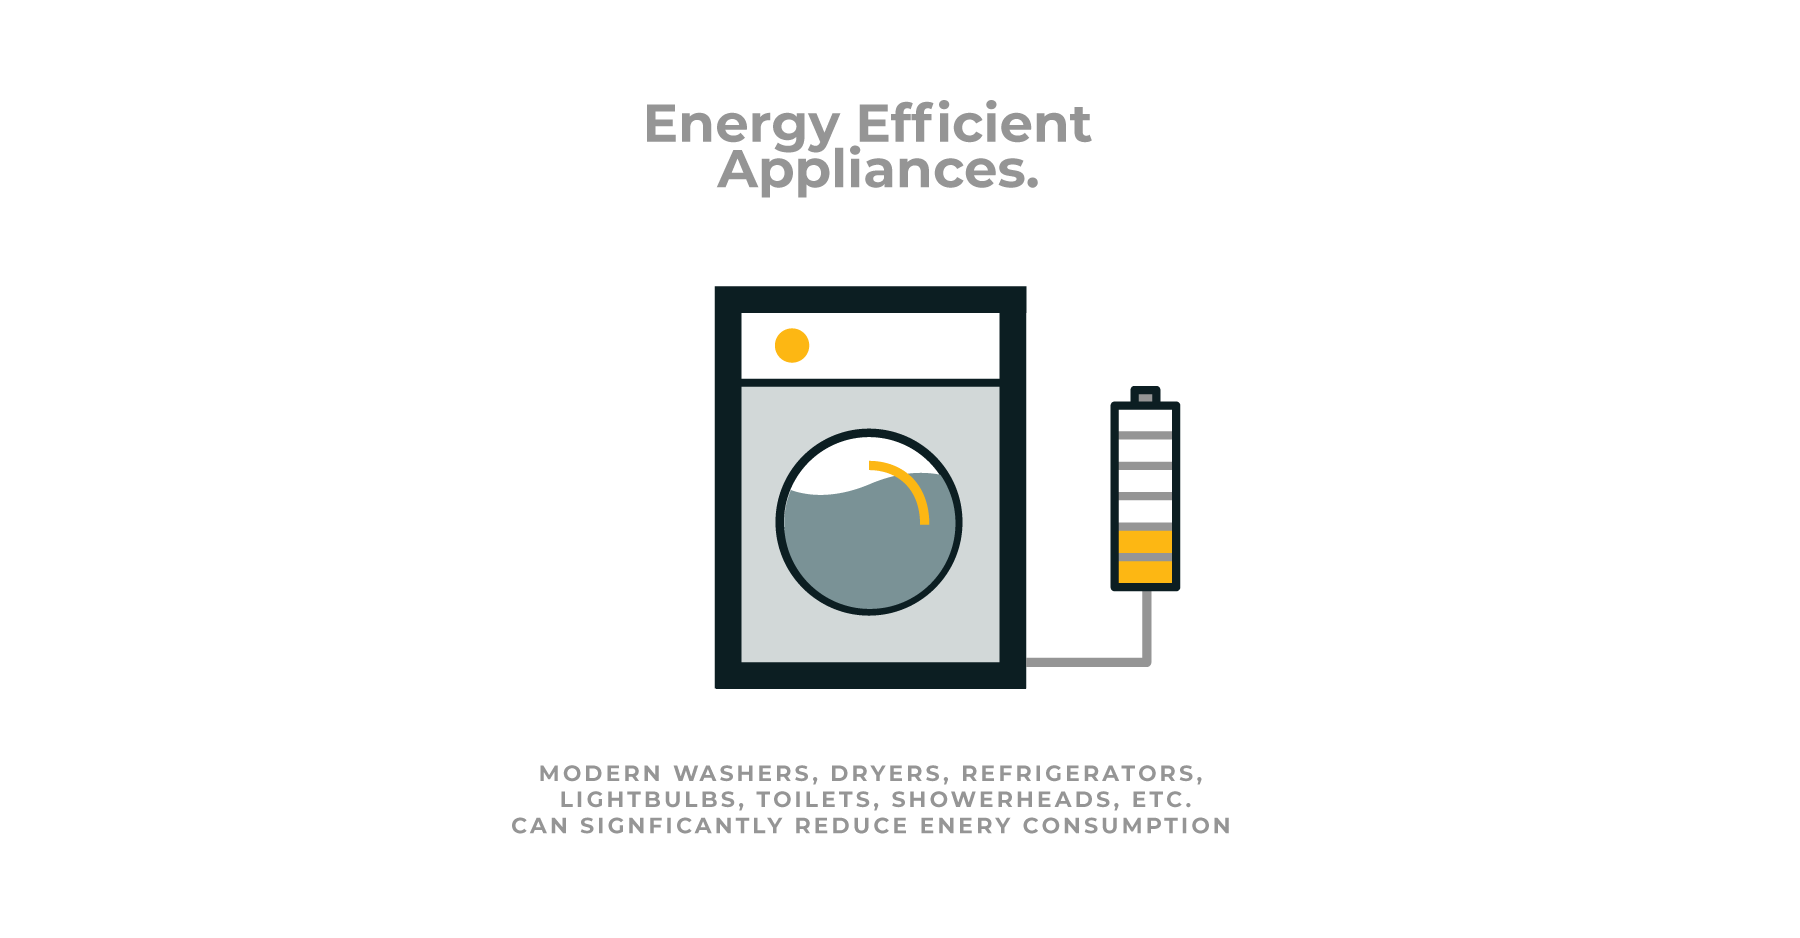 New York sustainable home design diagrams showing value of energy efficient appliances